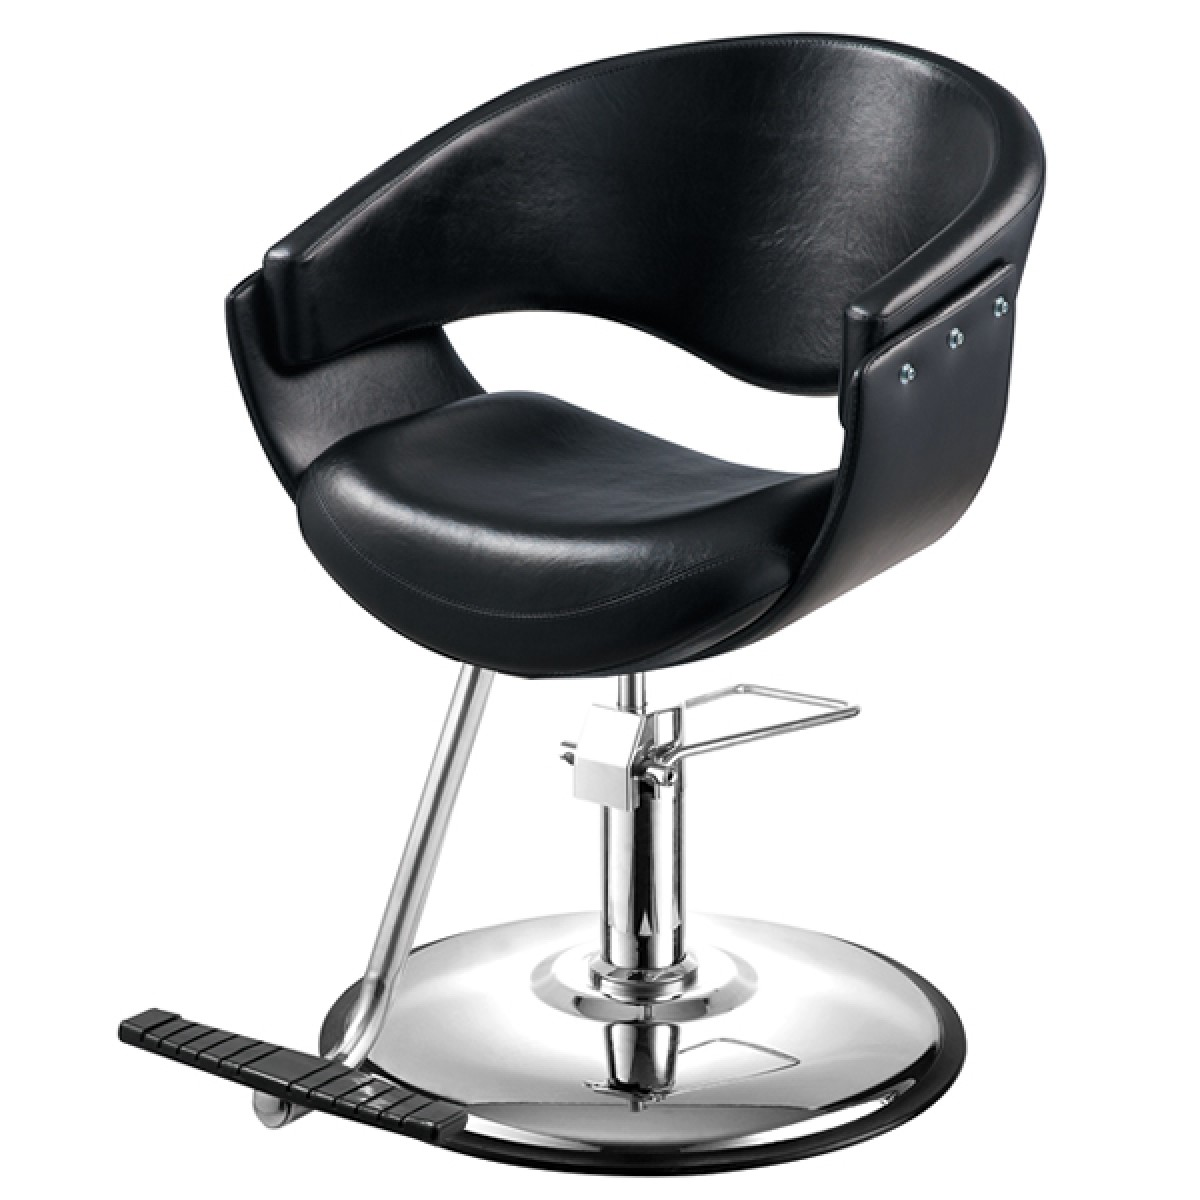 styling chairs for sale revolving chair in rawalpindi flamengo salon